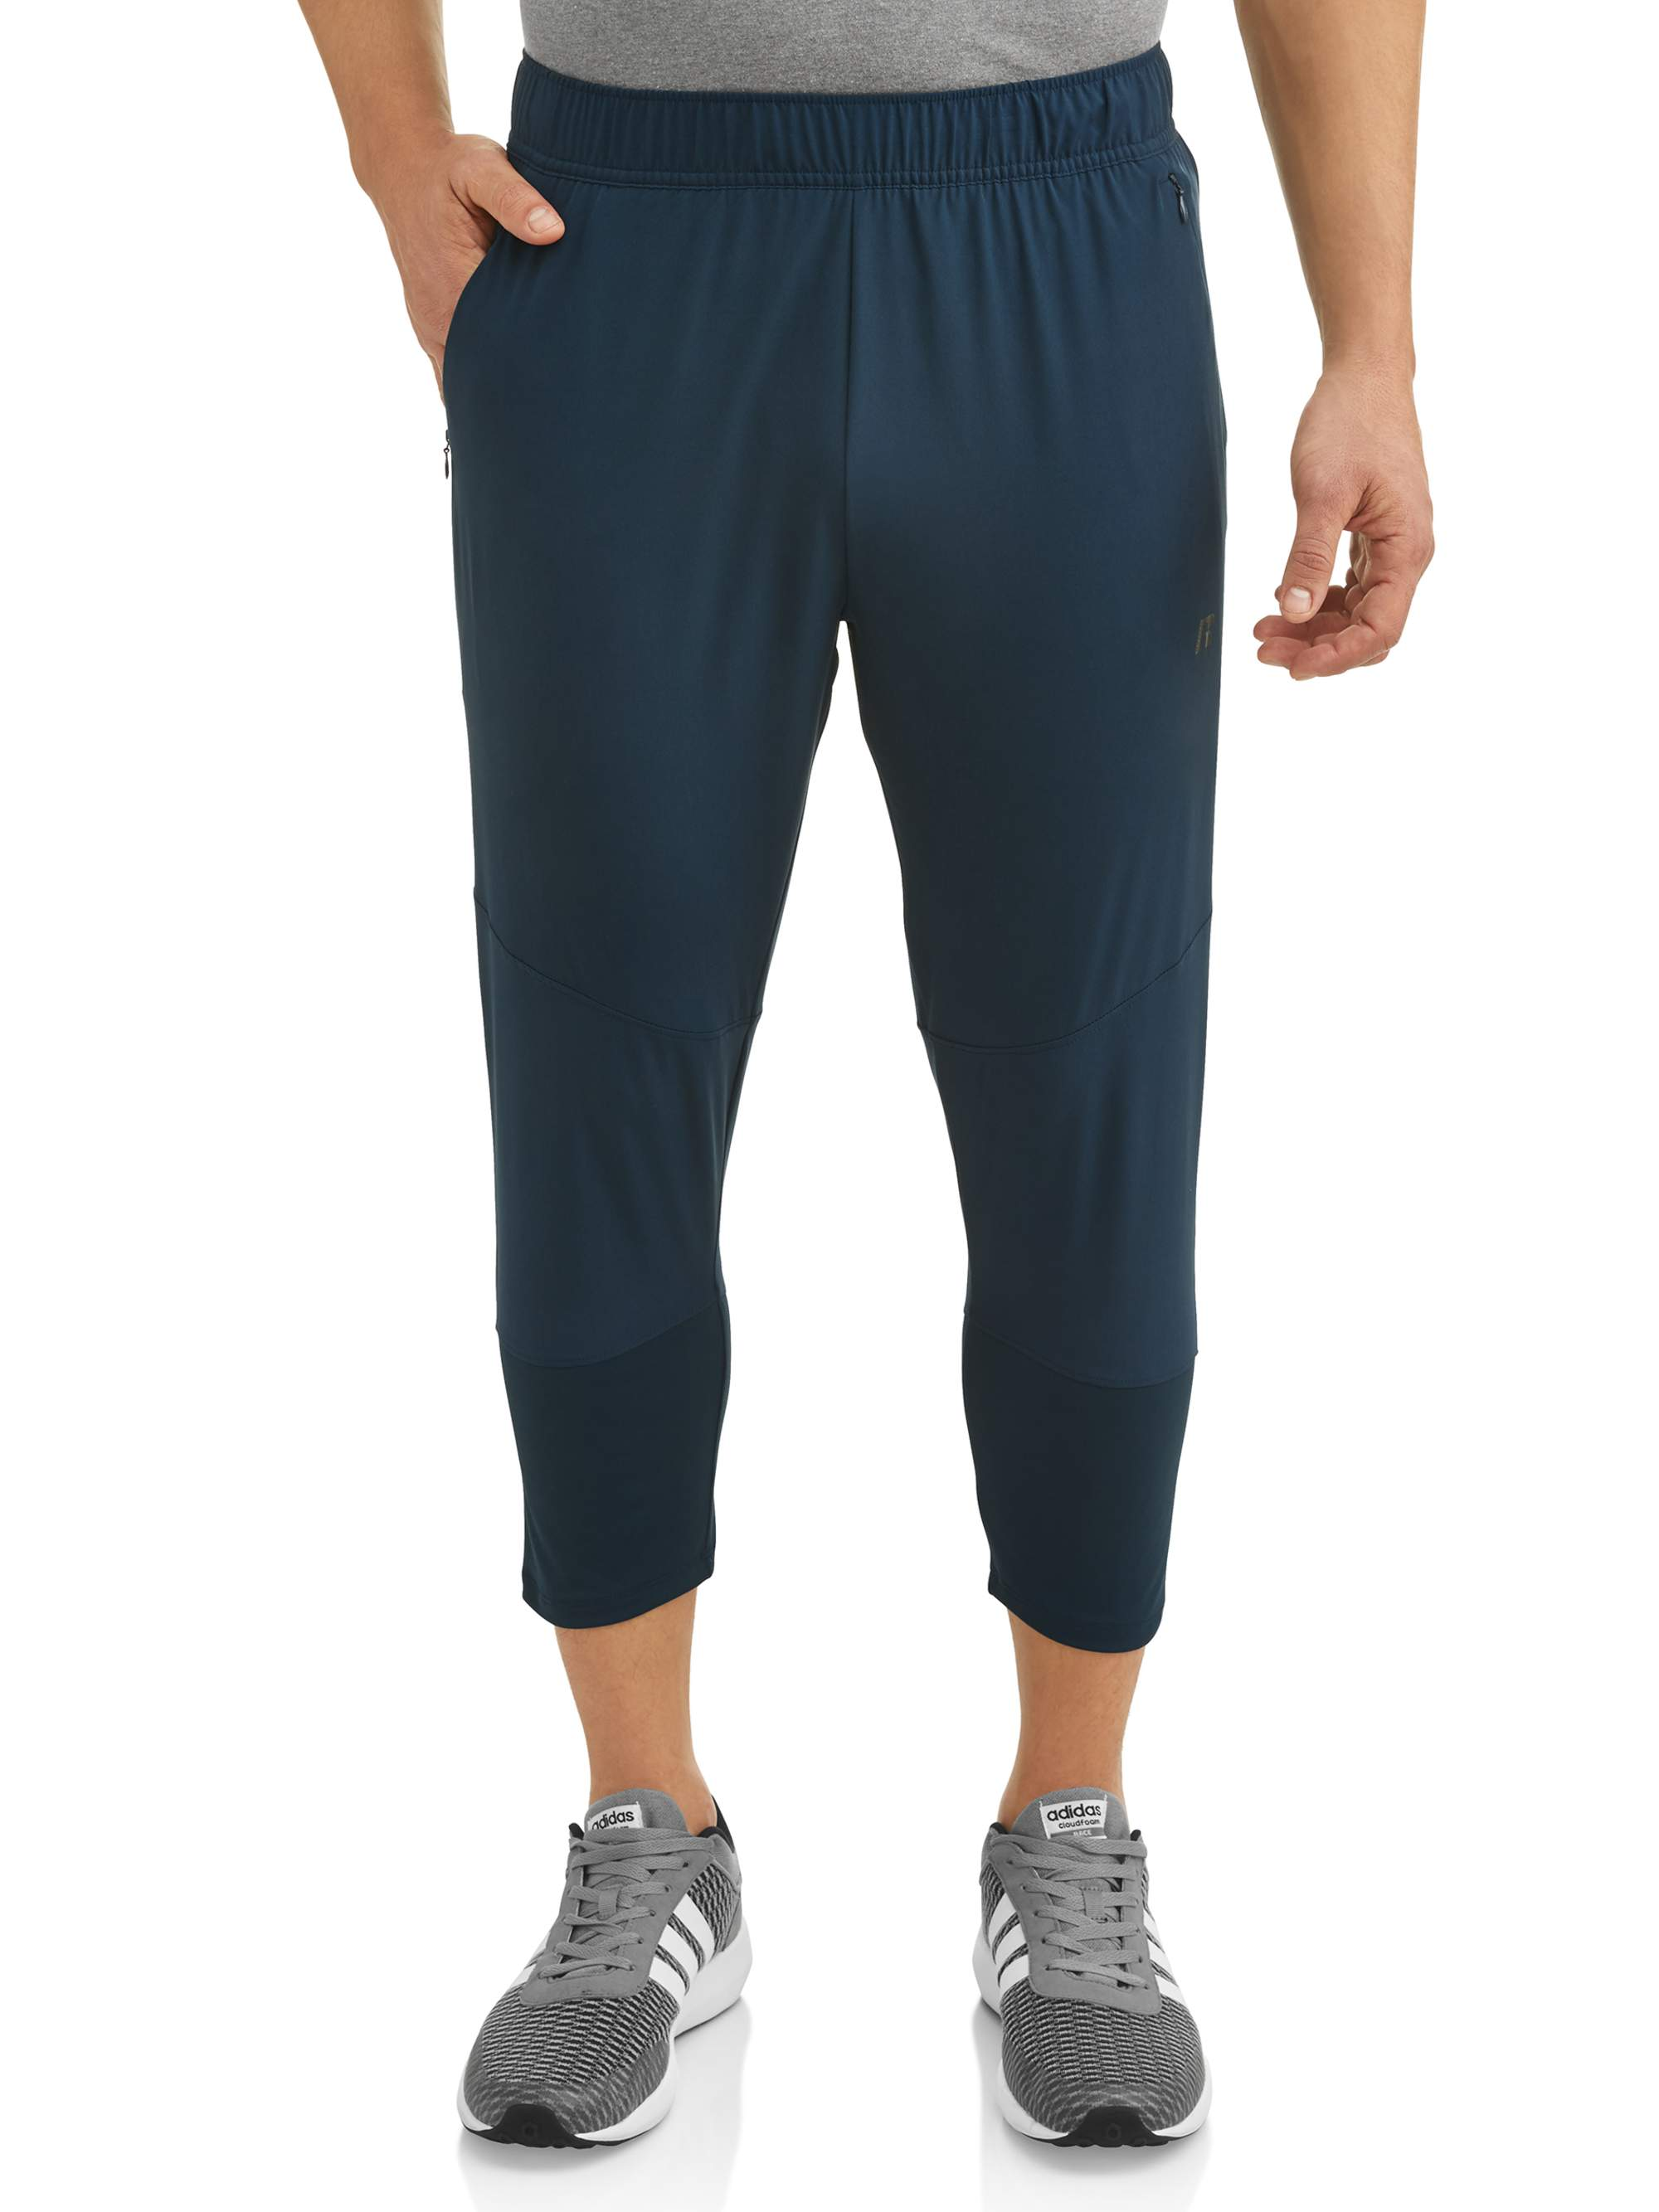 Russell Exclusive Big Men's 3/4 Length Performance Pant